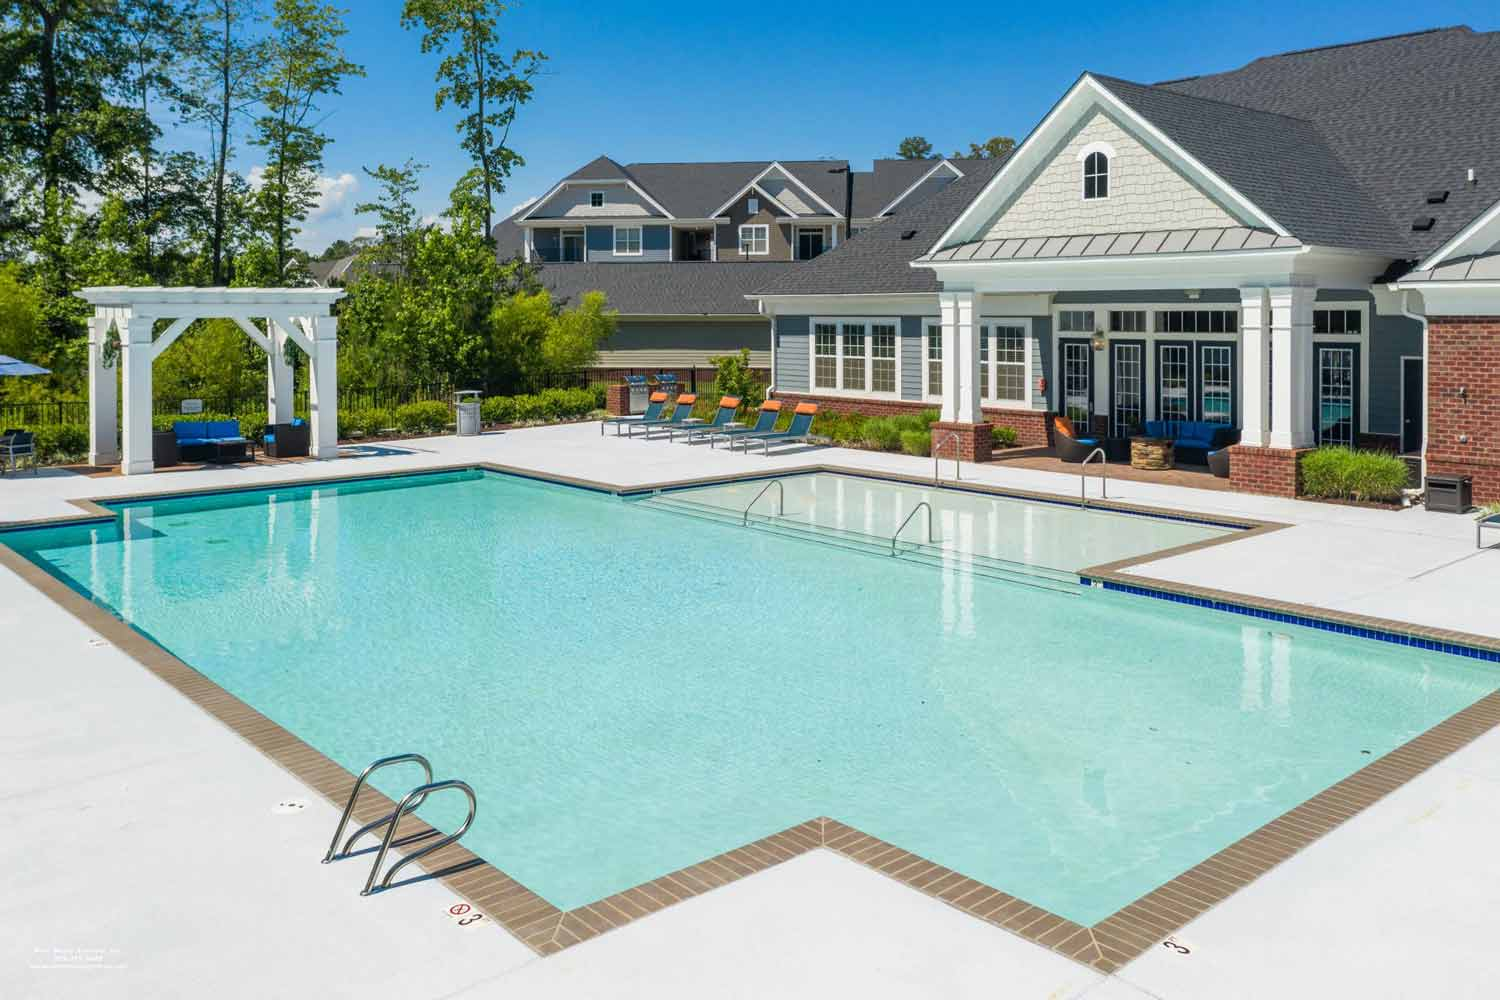 Pool with shallow sundeck, patio lounge chairs, and clubhouse access.